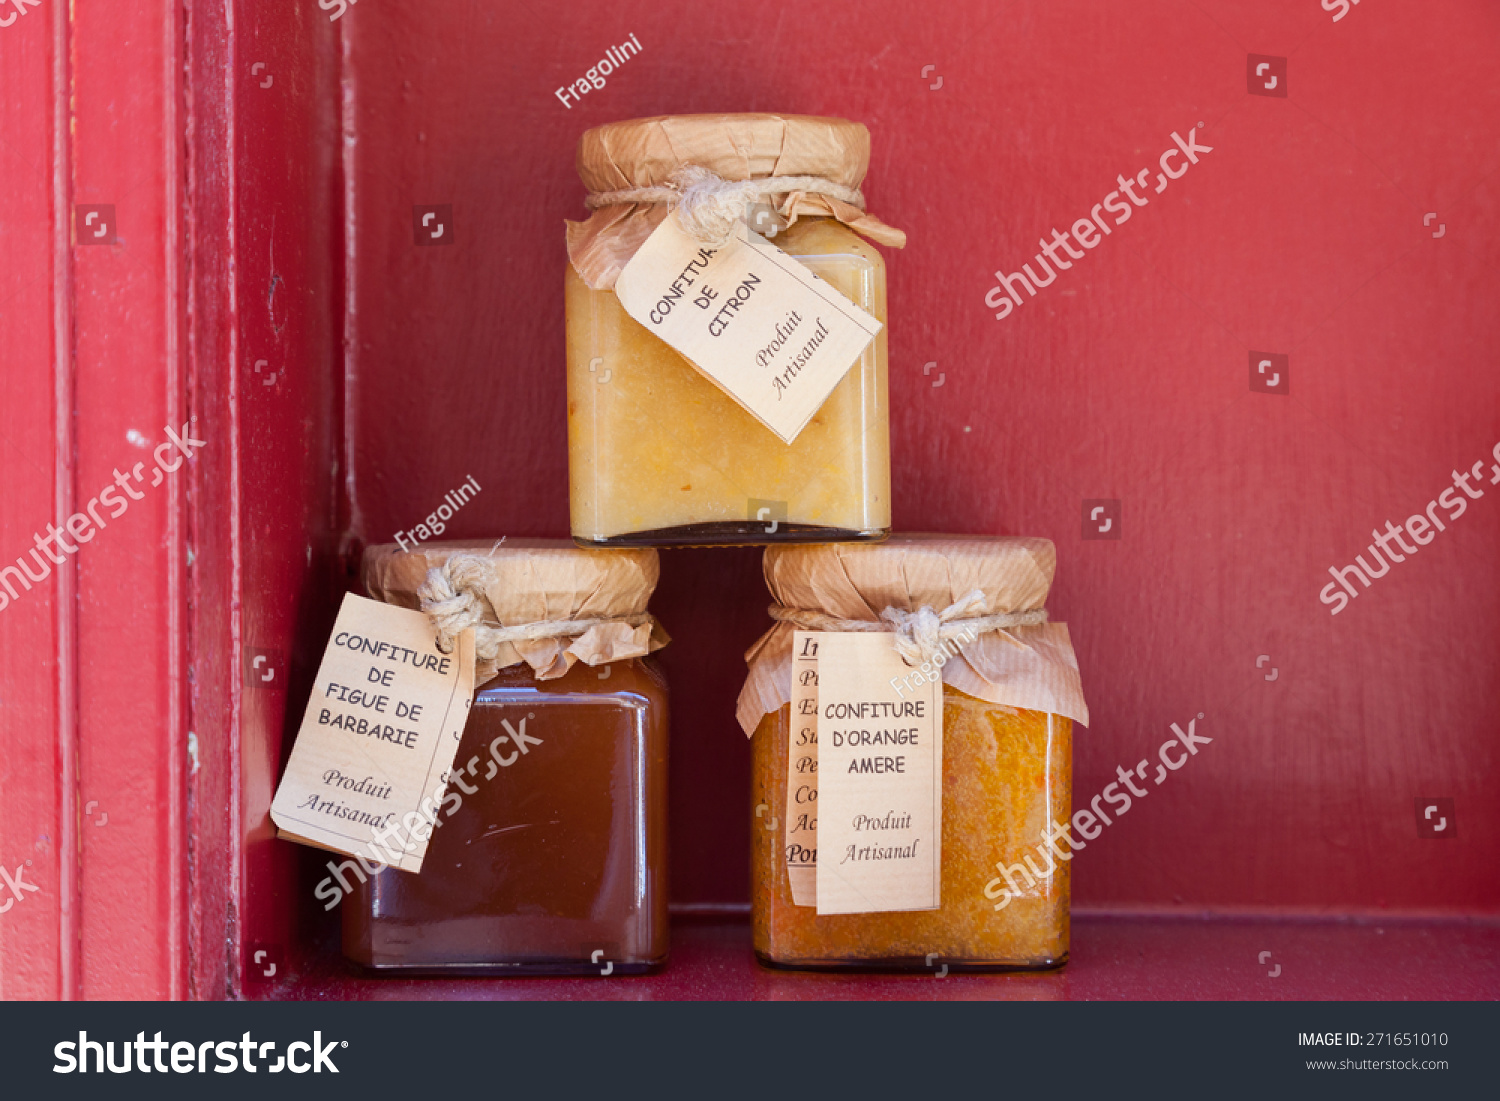 jars various jams local grocery store stock photo. Black Bedroom Furniture Sets. Home Design Ideas